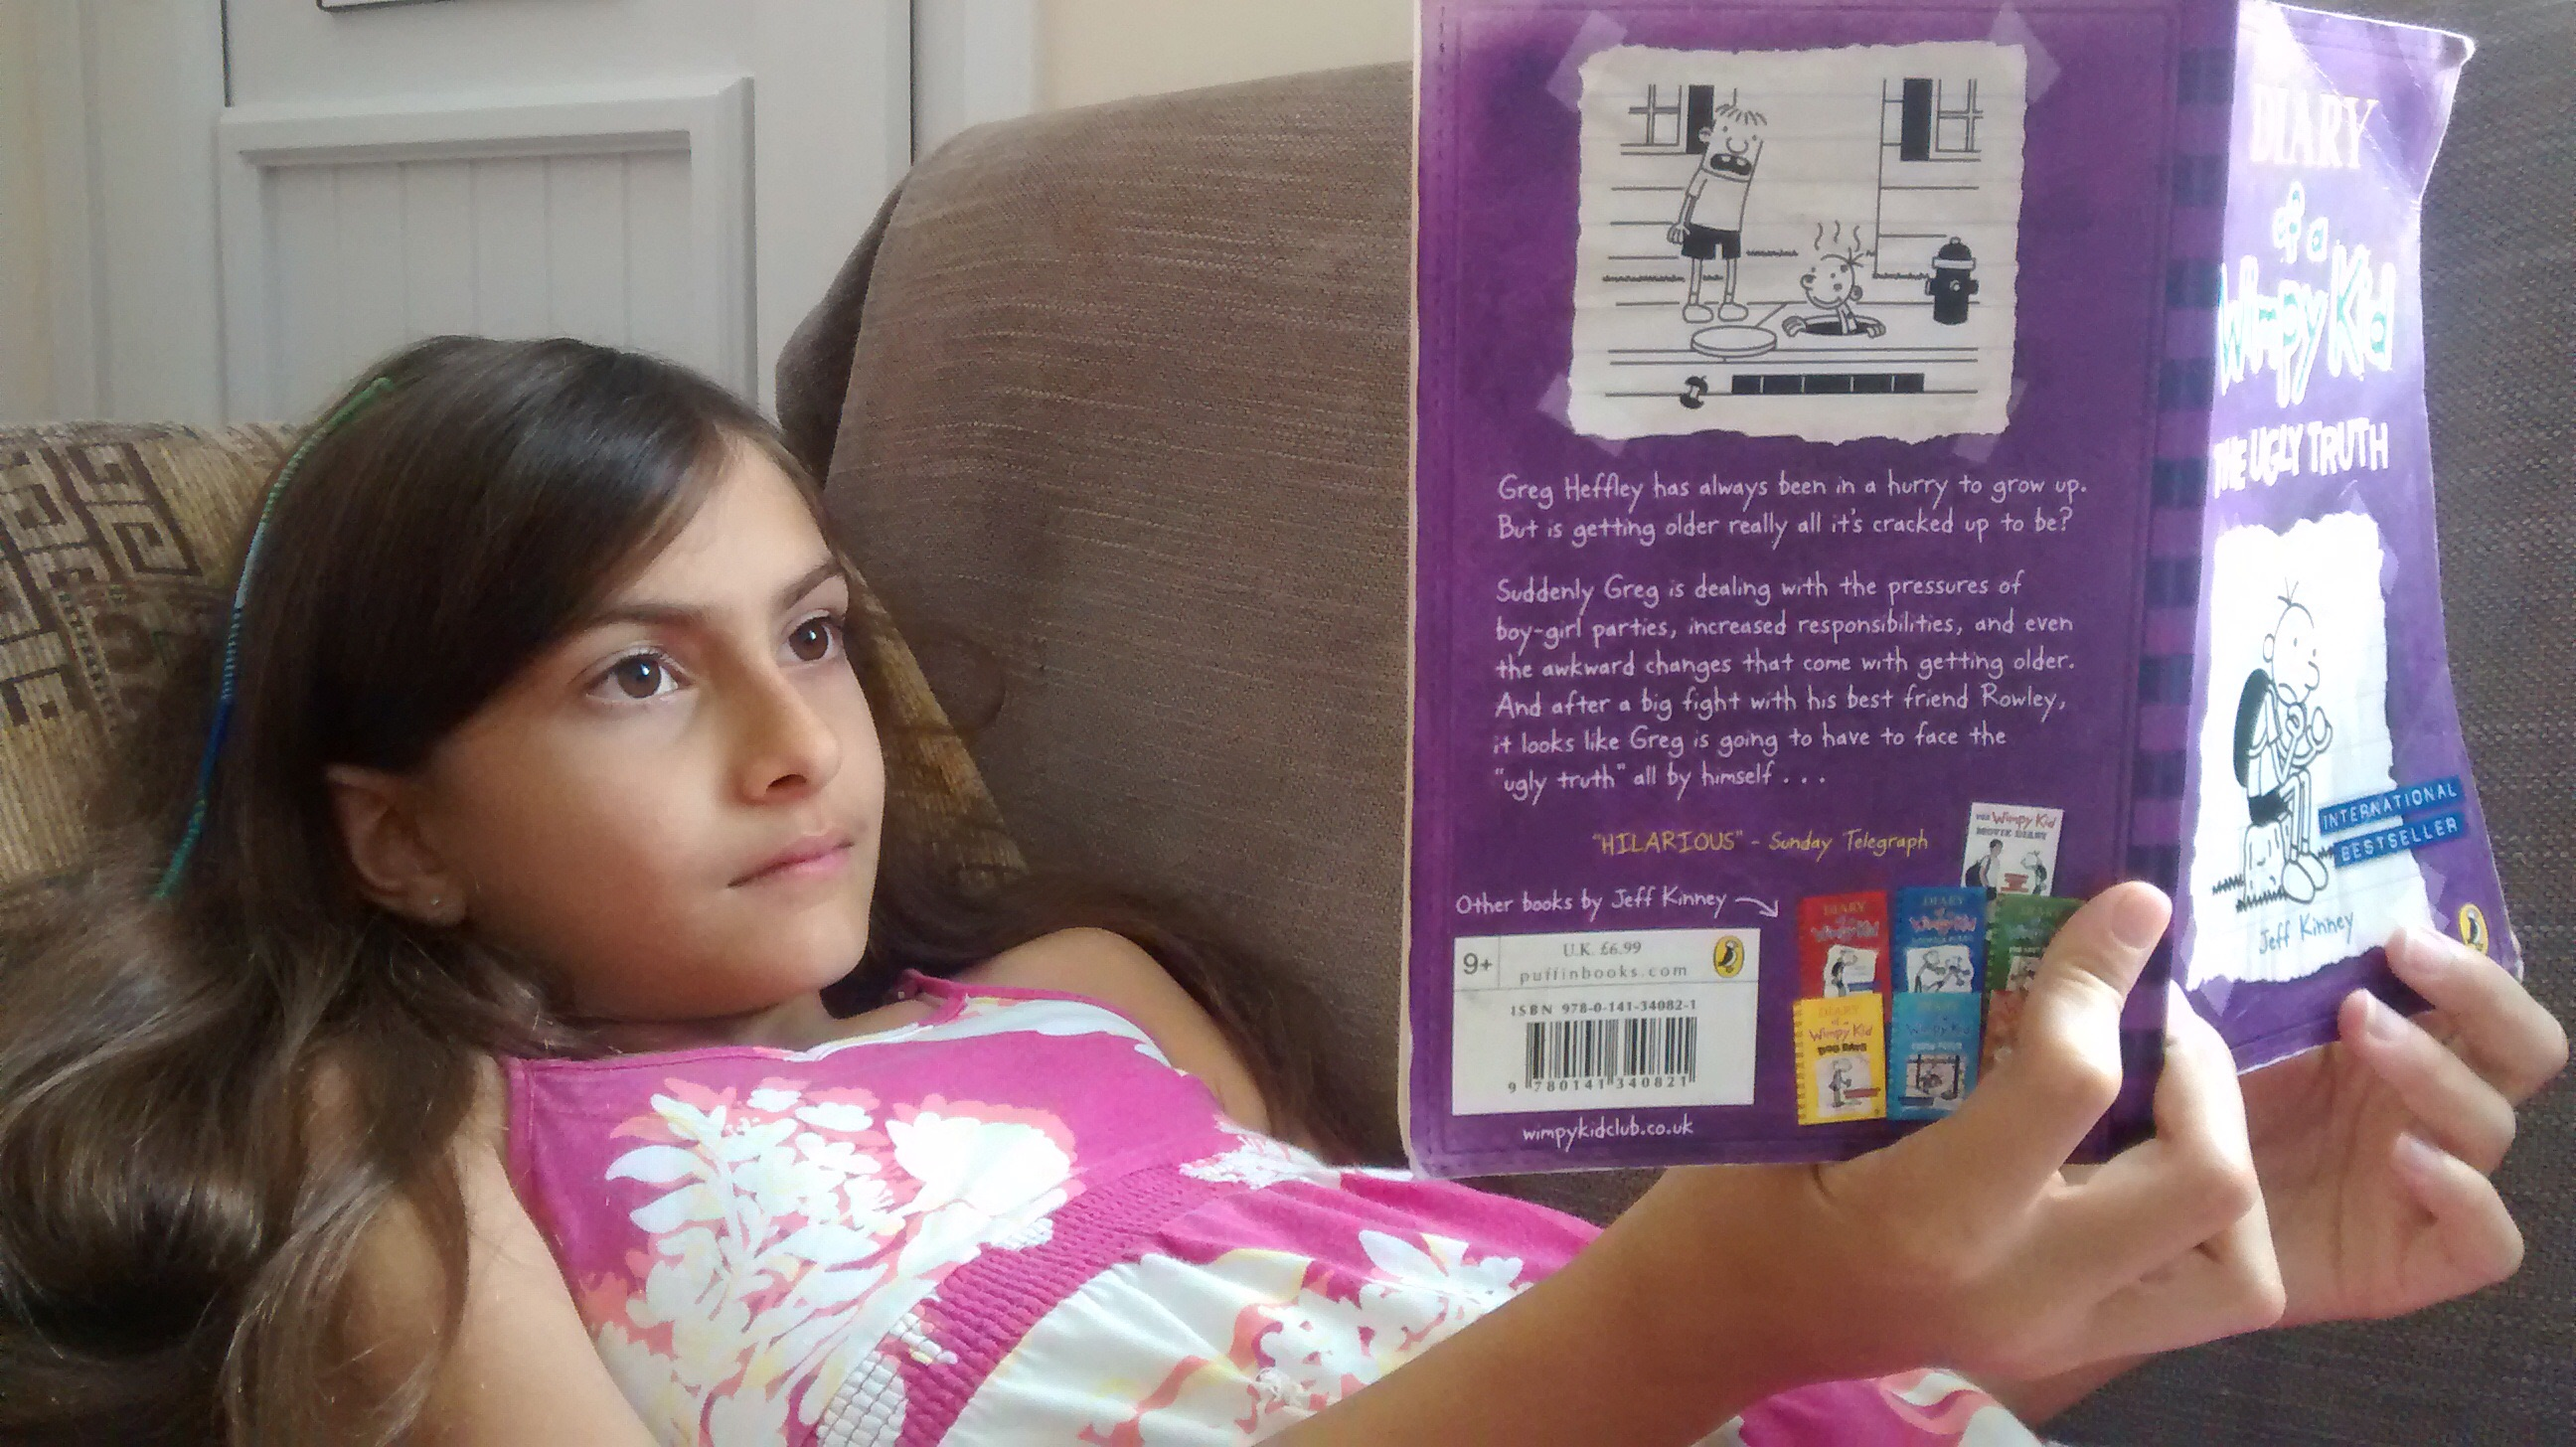 diary of a wimpy kid a review by a patel breen the diary of a wimpy kid a review by a patel breen